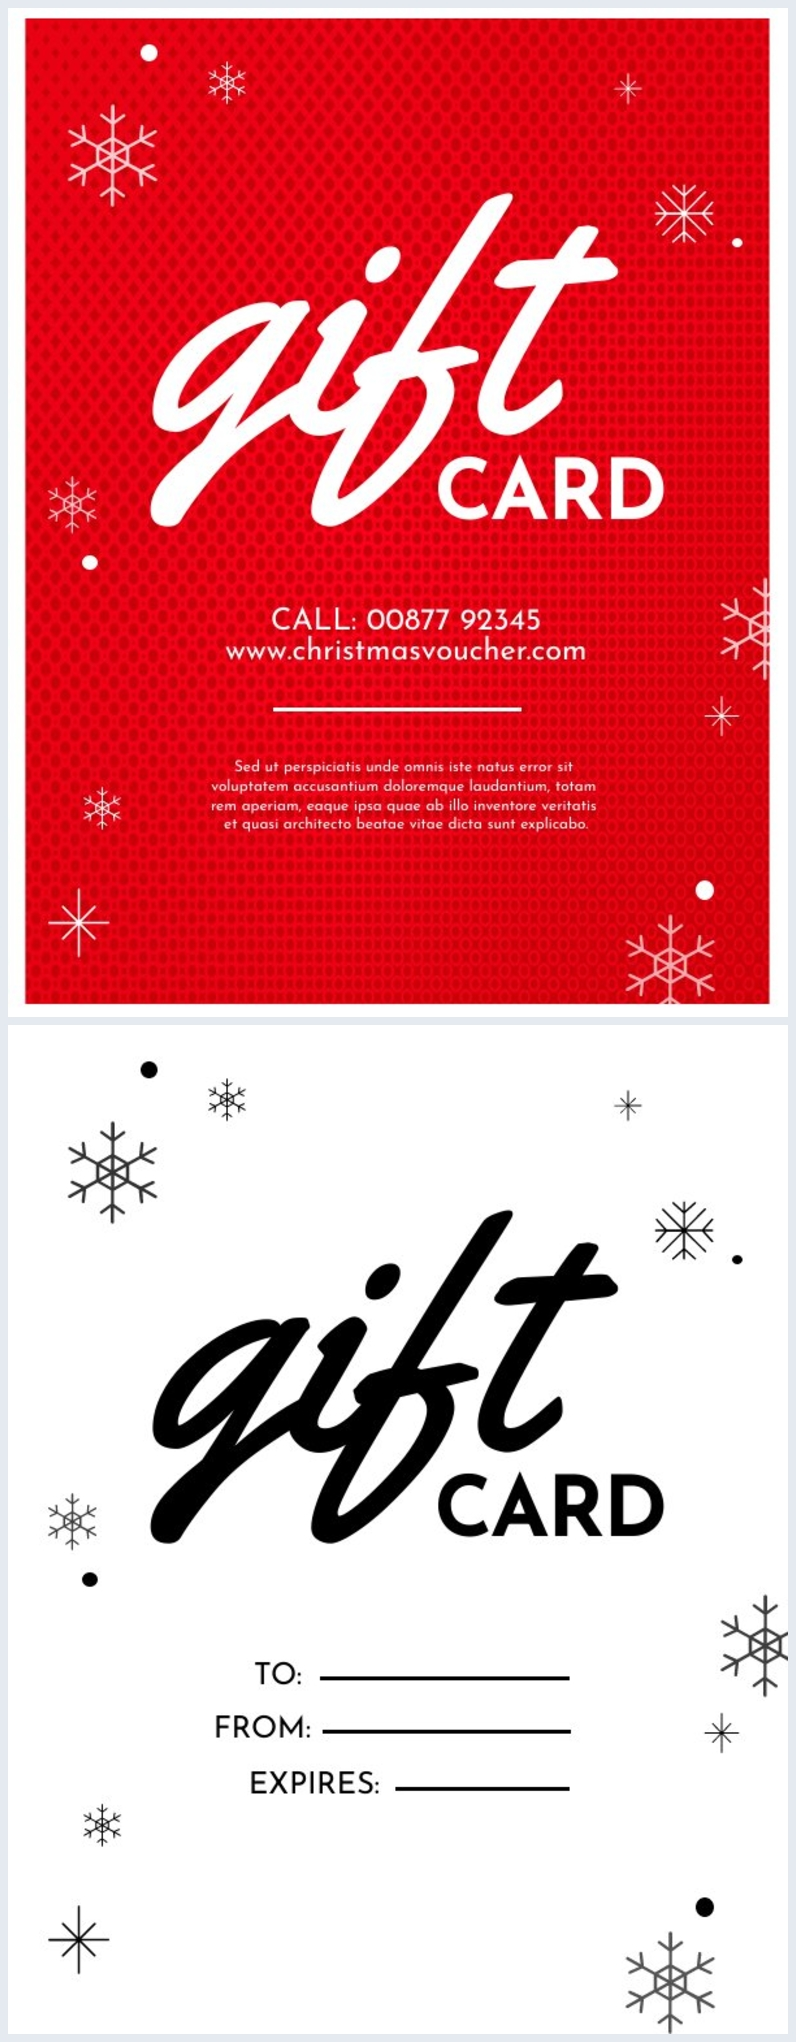 Christmas Gift Card Design Idea